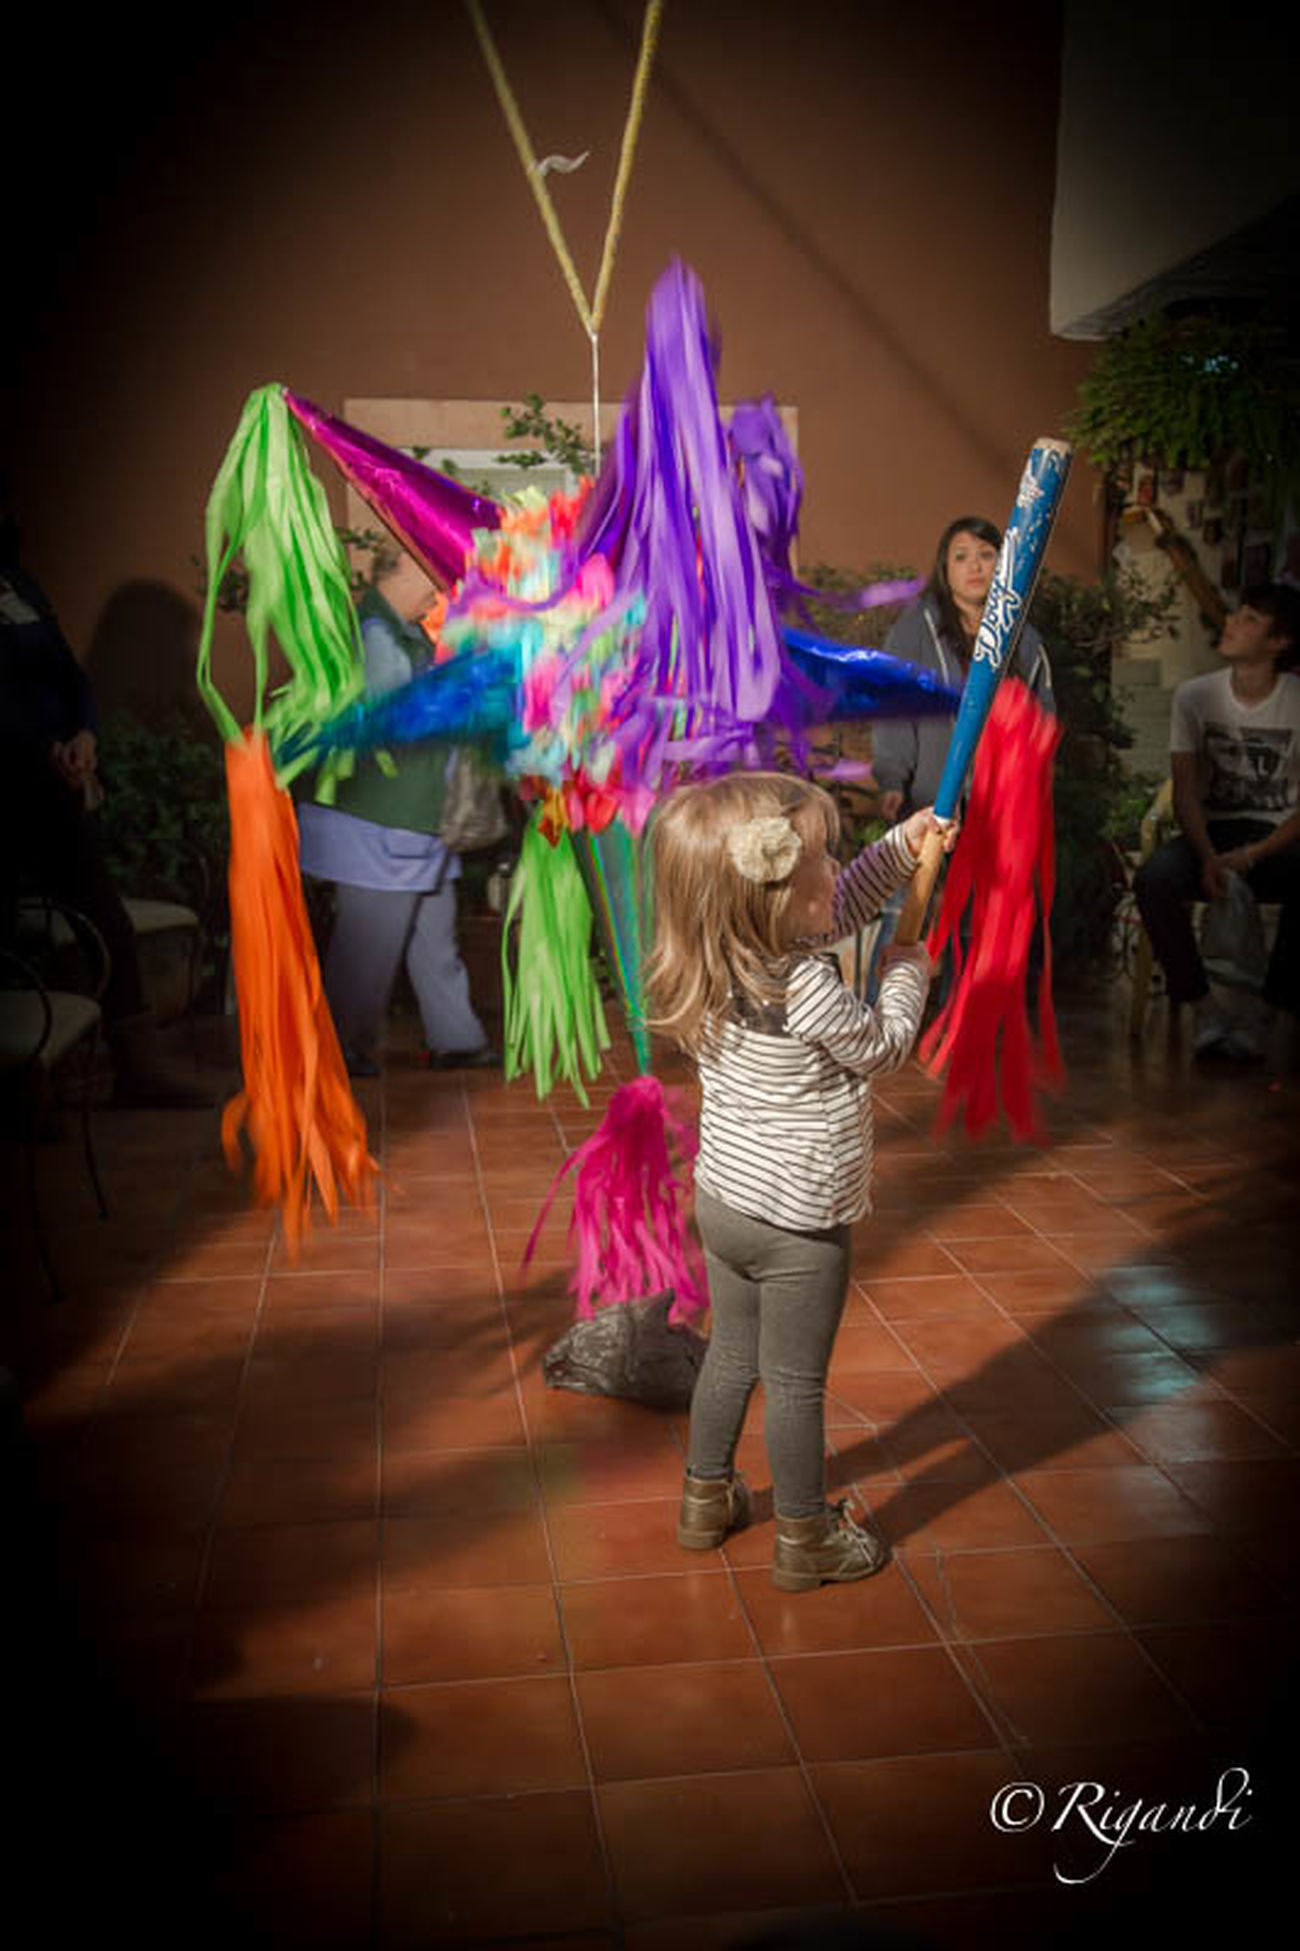 la piñata Adult Cheerful Child Childhood Children Only Dancing Enjoyment Friendship Full Length Fun Girls Human Body Part Indoors  Motion Multi Colored Night People Piñata Smiling Togetherness